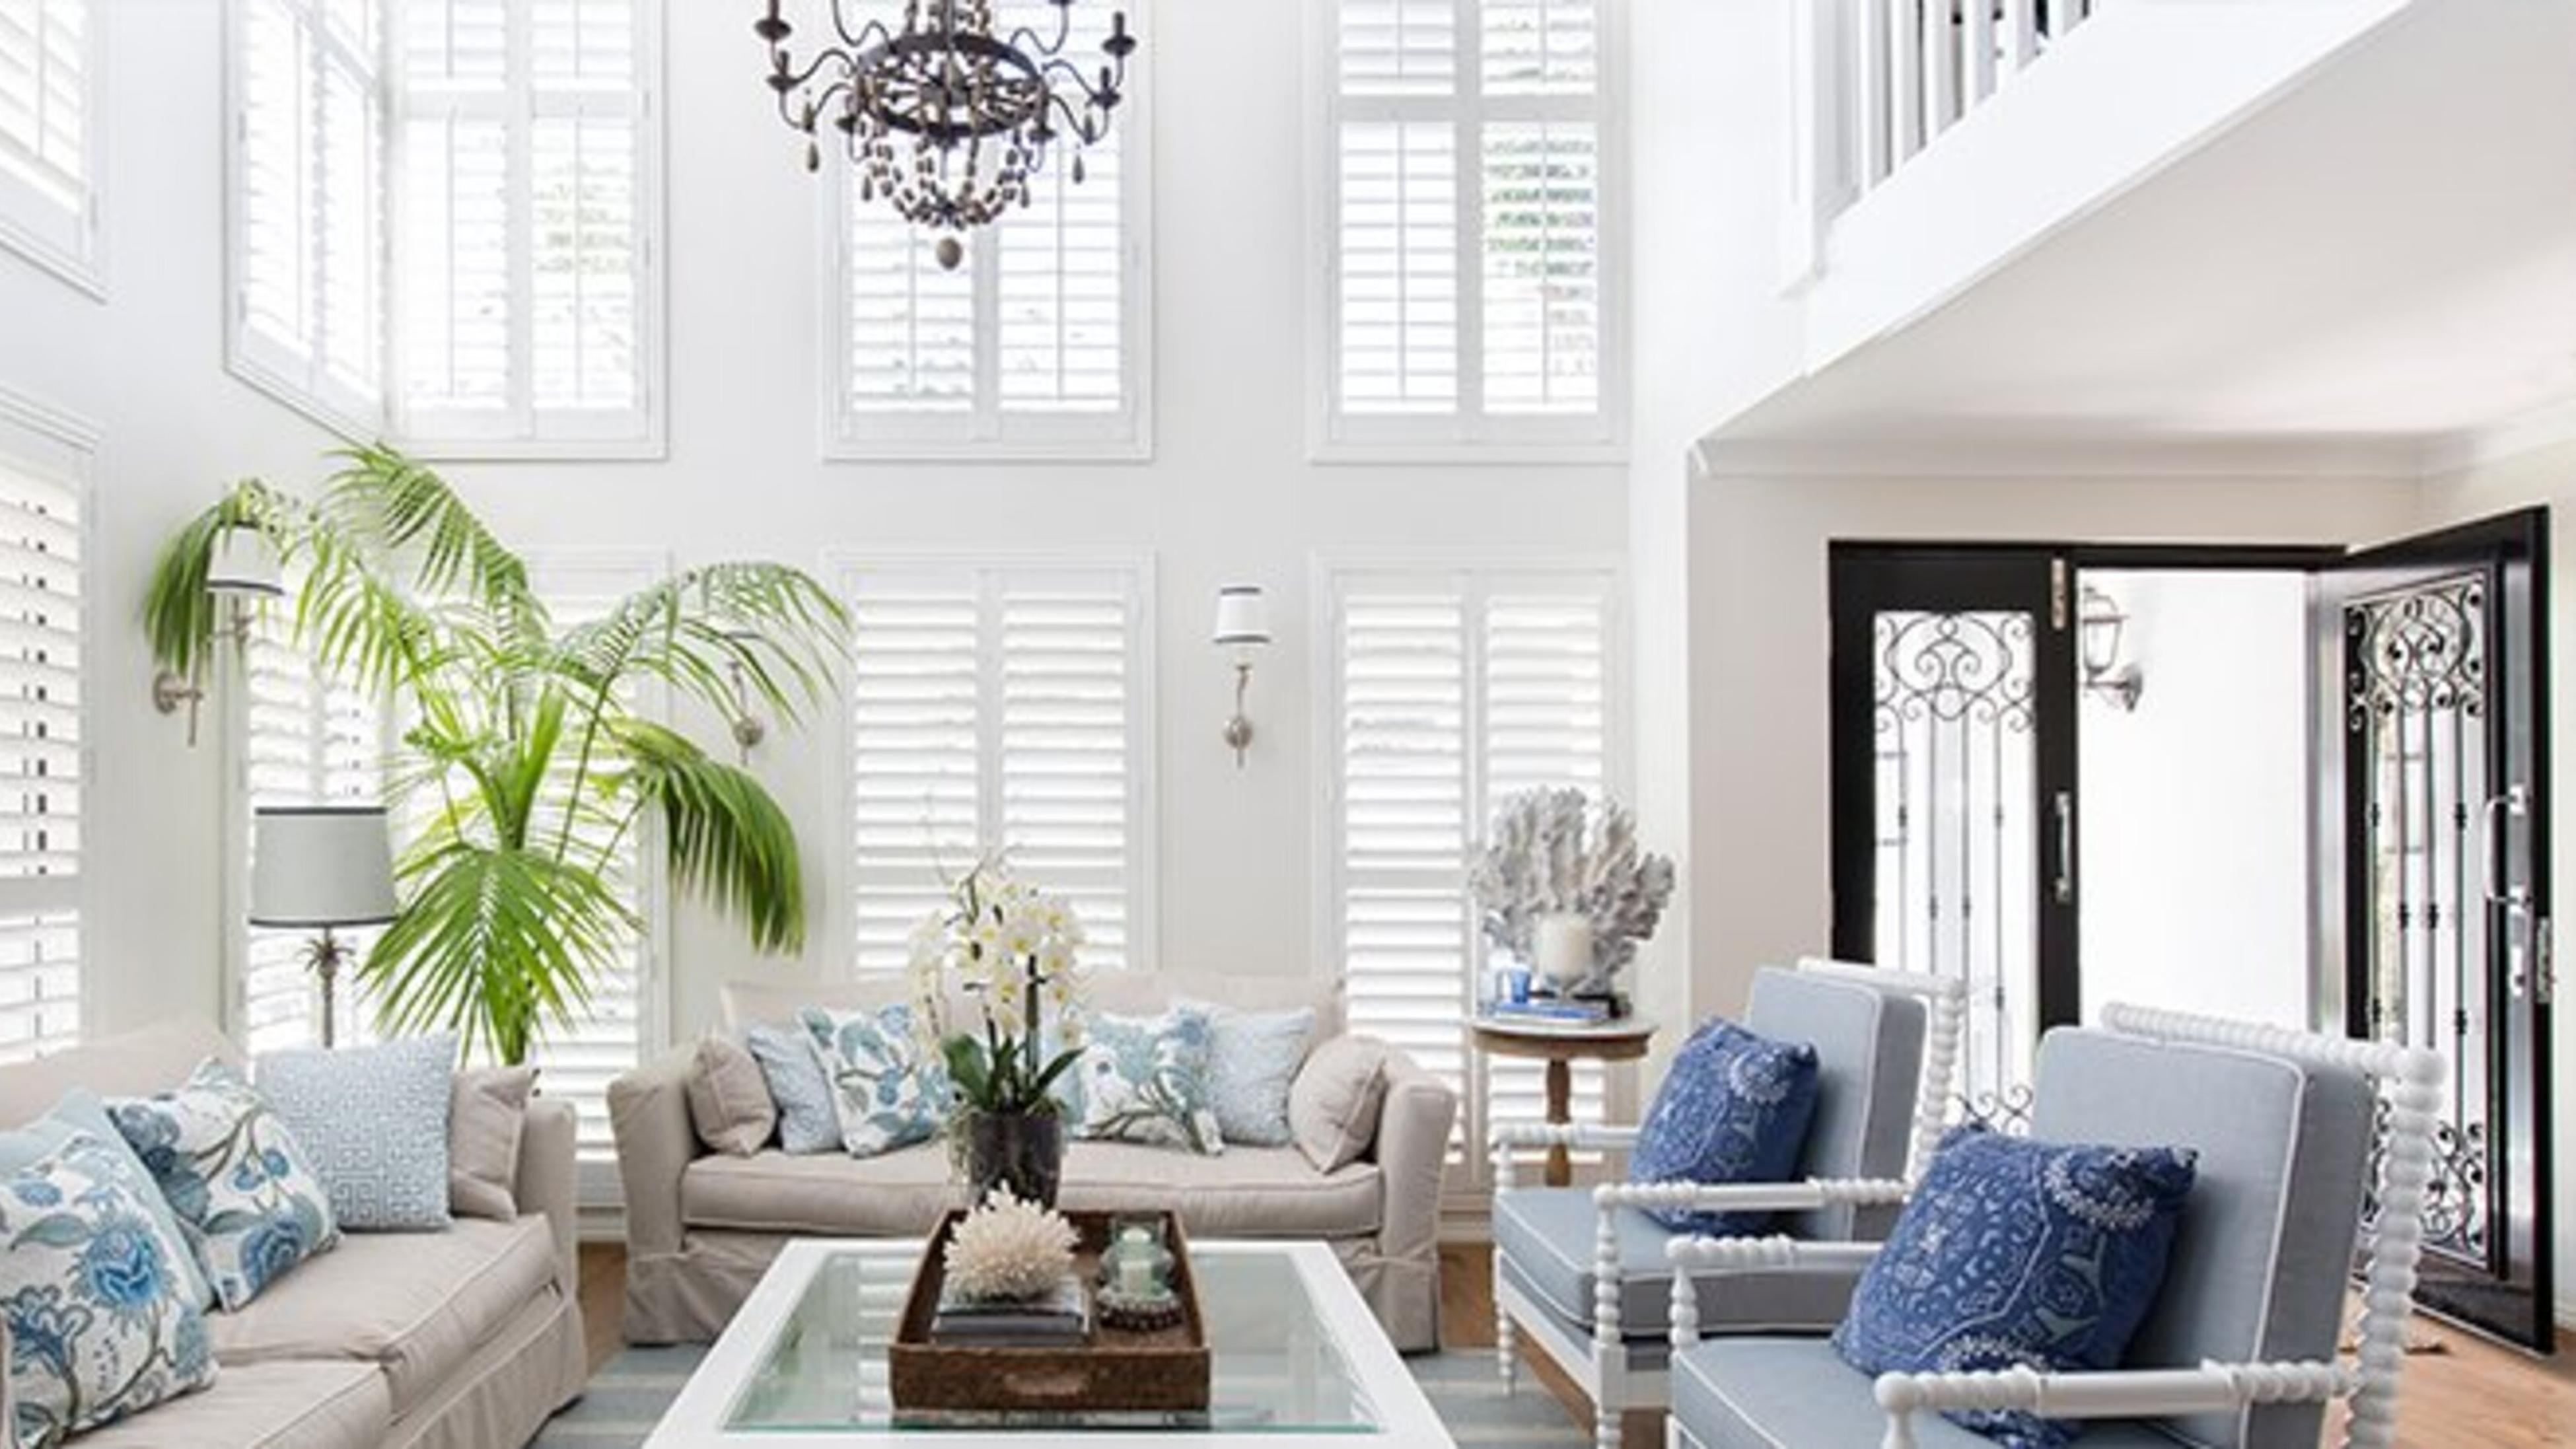 A Hamptons style living area with couches, armchairs, a large palm tree, white shutter windows and a chandelier.